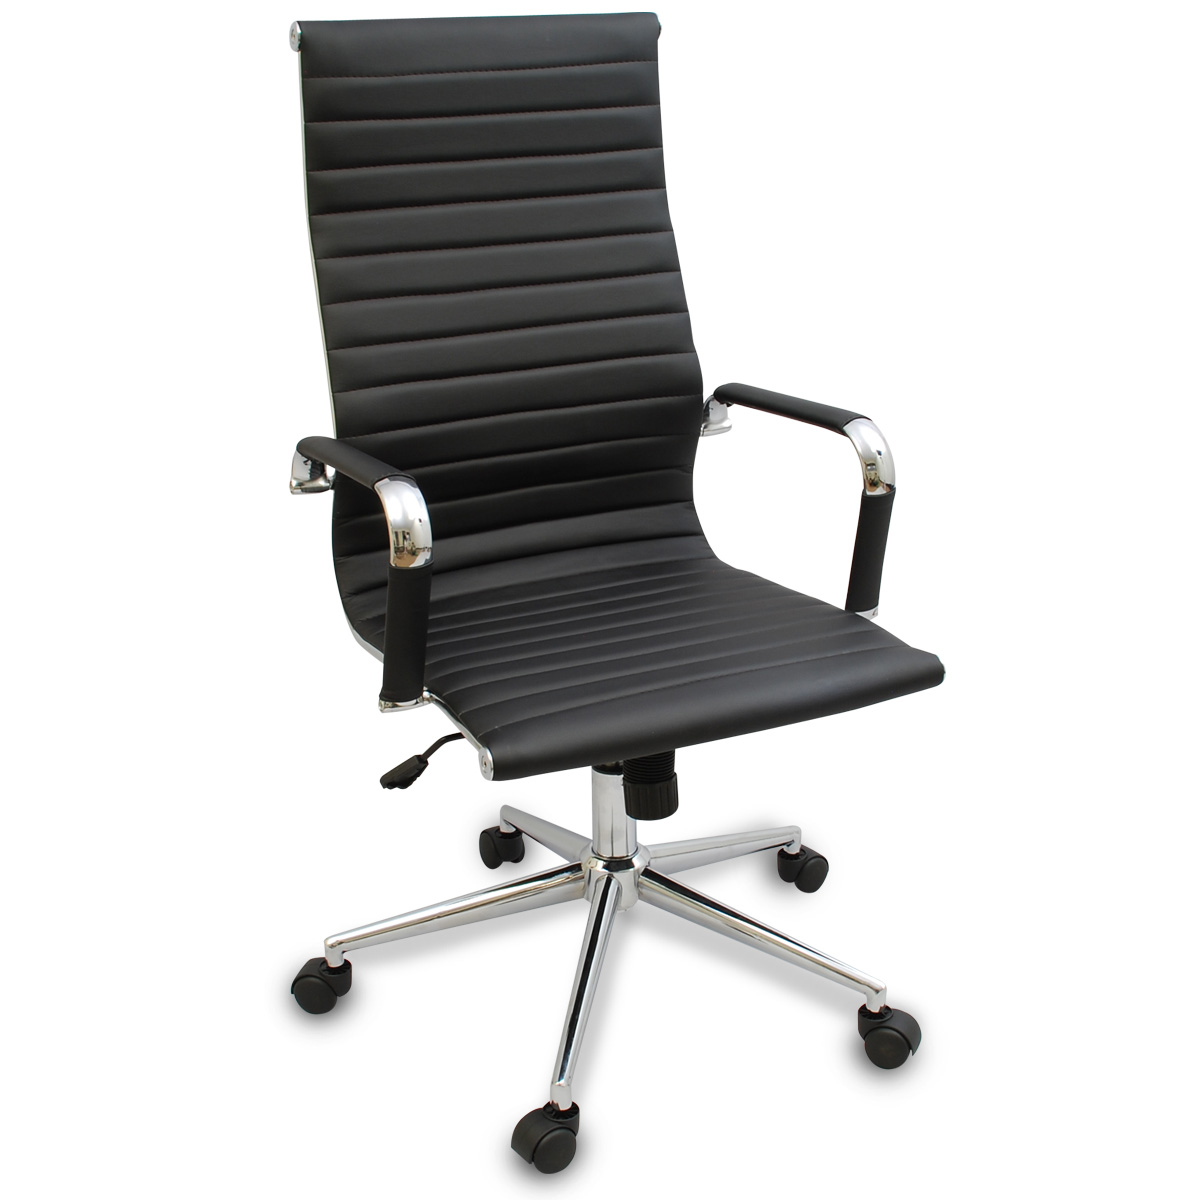 Modern ergonomic office chairs - Responsive Image